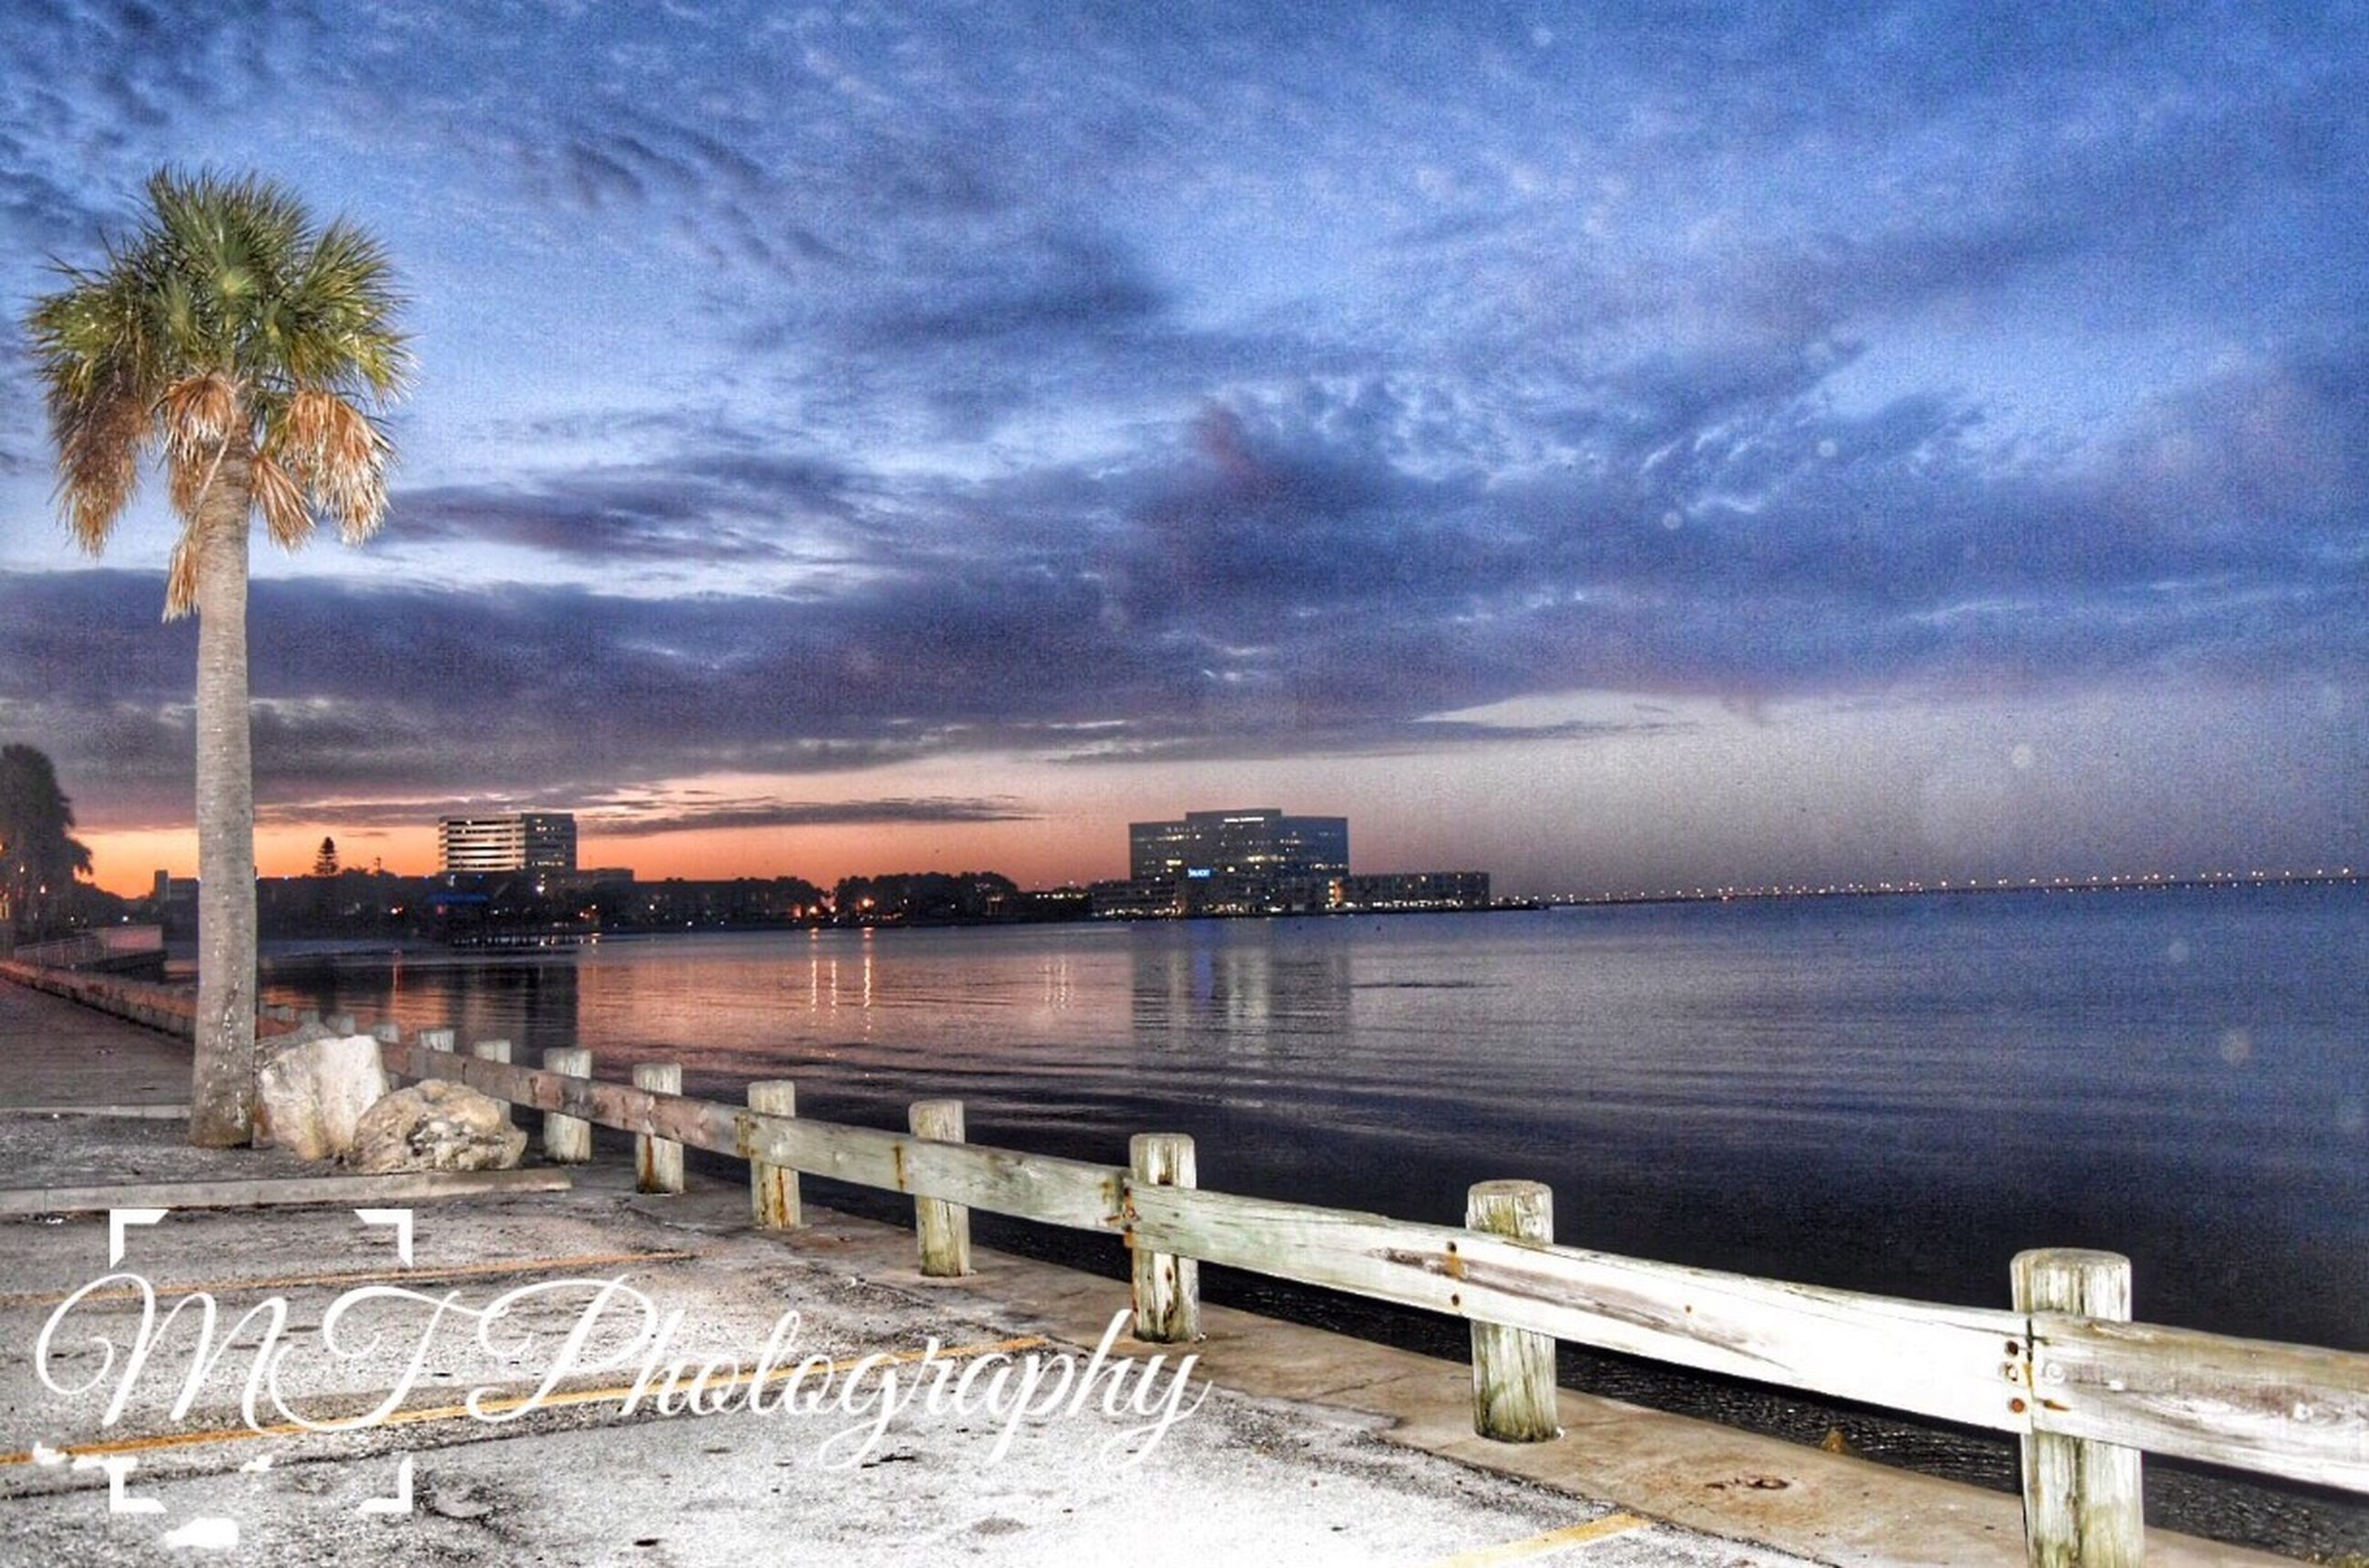 sky, water, cloud - sky, sea, built structure, pier, architecture, building exterior, cloudy, scenics, tranquility, beach, nature, beauty in nature, tranquil scene, railing, cloud, sunset, dusk, weather